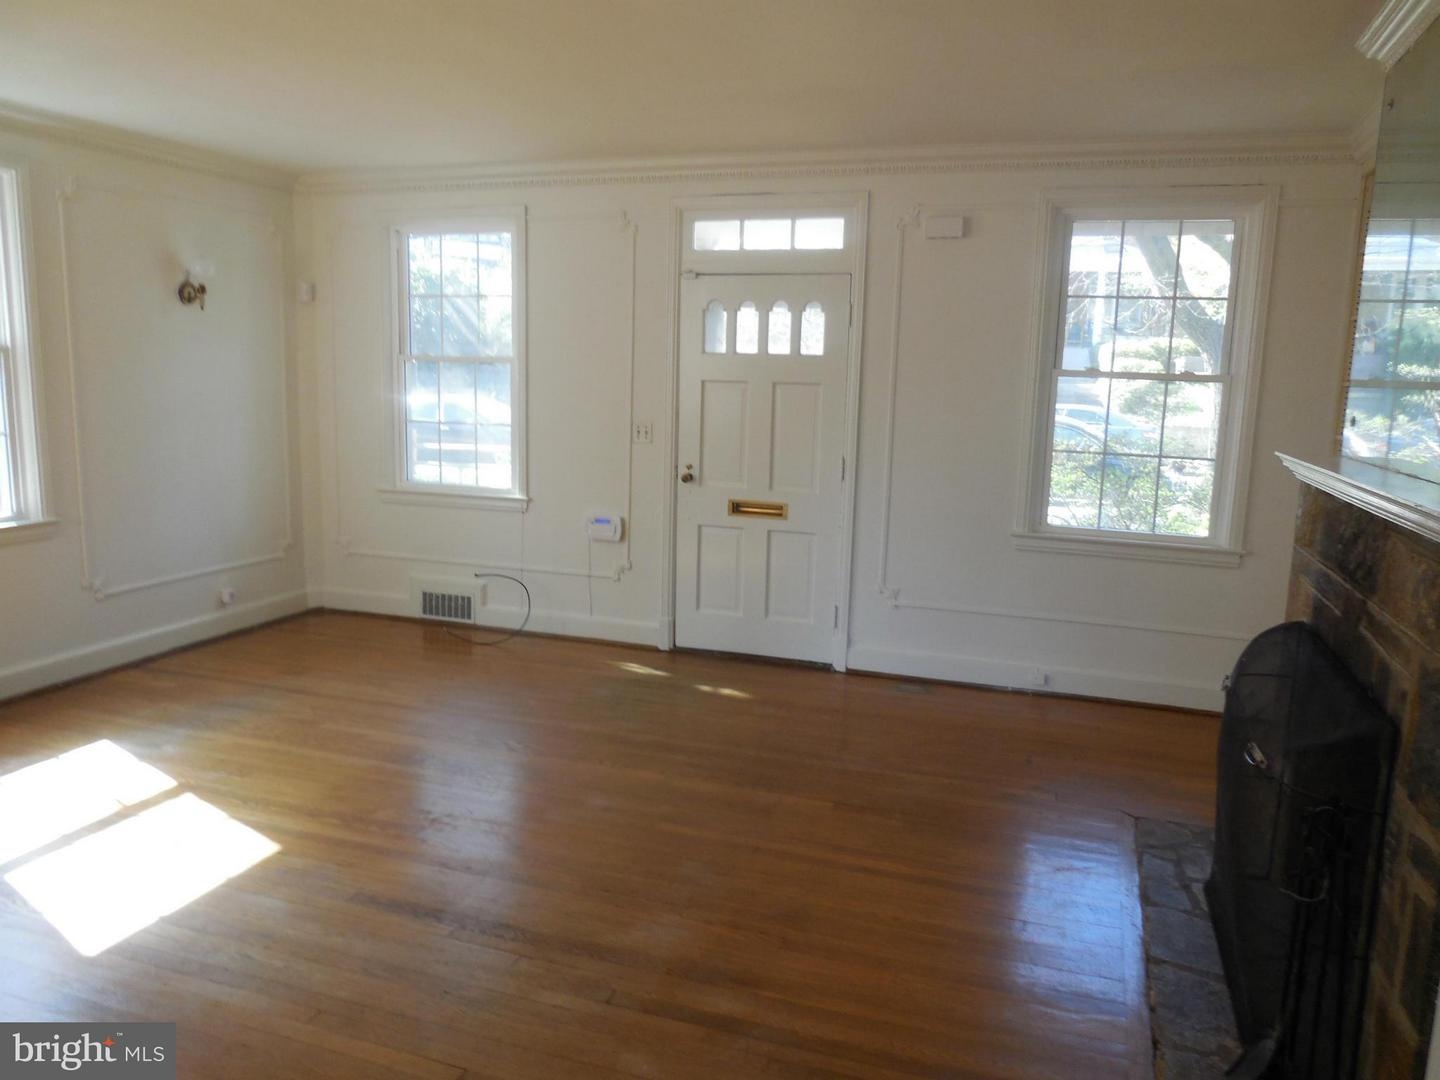 Additional photo for property listing at 5223 Chevy Chase Pkwy NW 5223 Chevy Chase Pkwy NW Washington, District Of Columbia 20015 United States